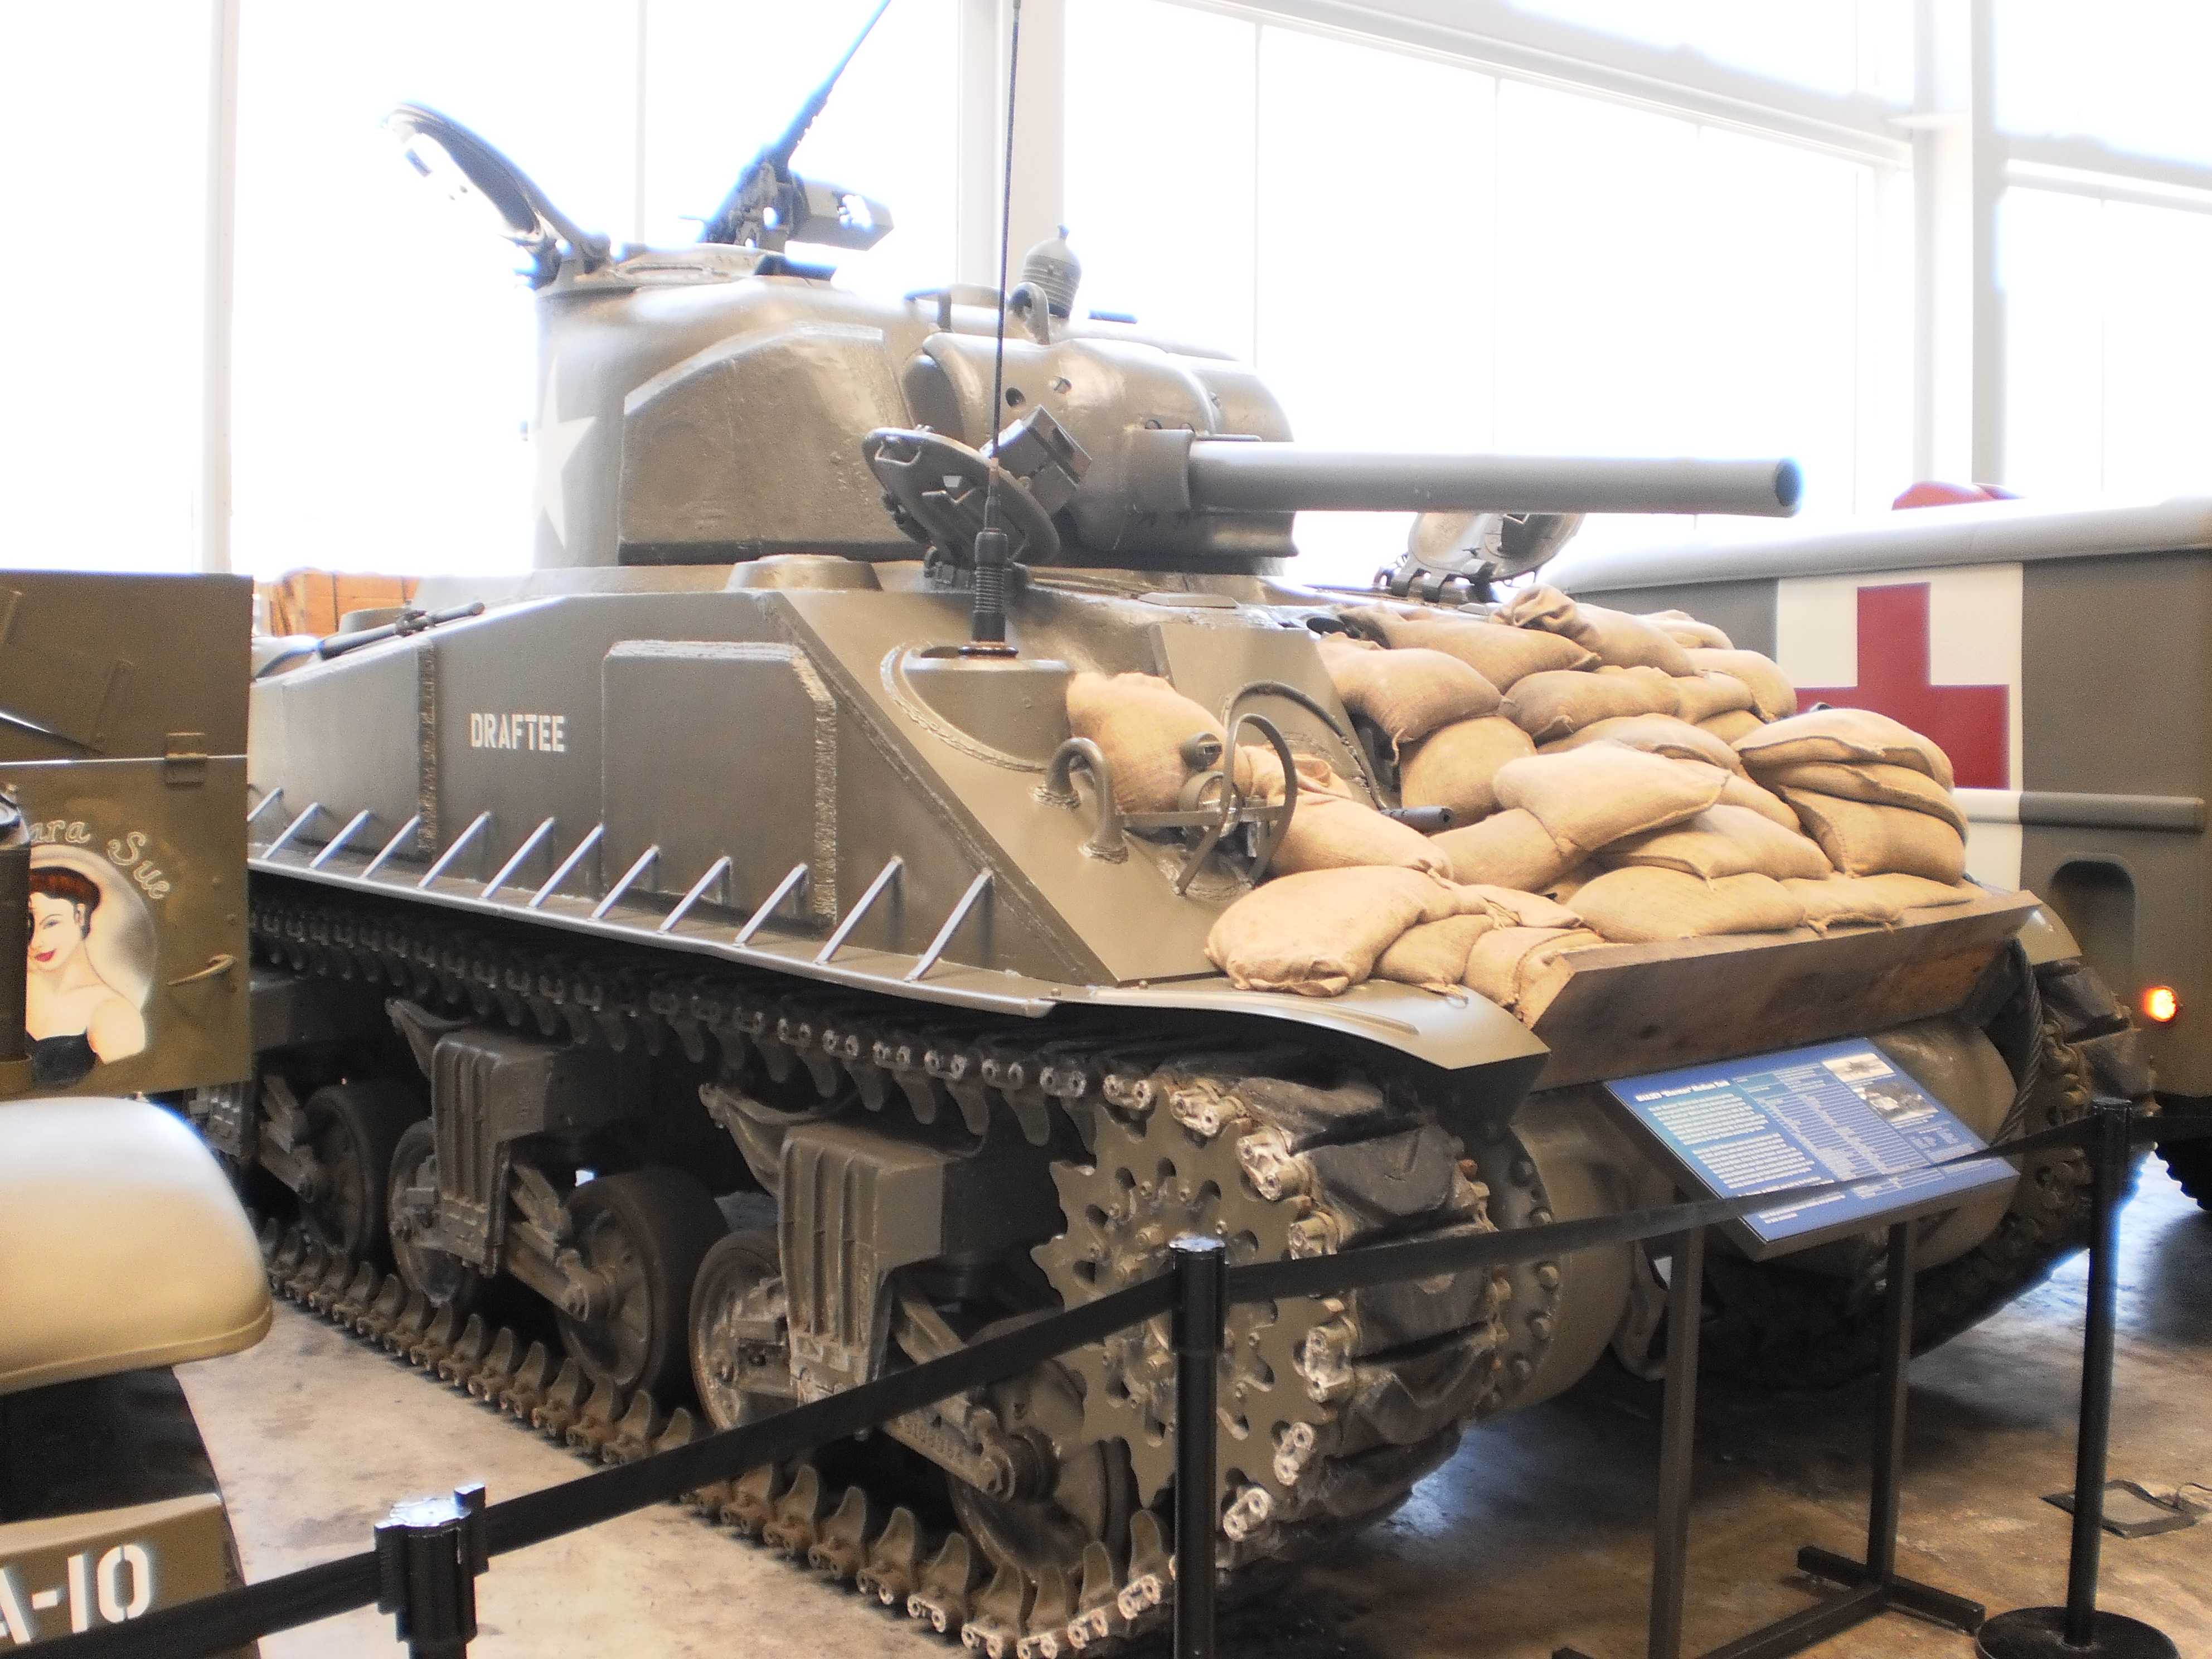 This Sherman tank is just one of the thousands of artifacts the museum has on display at any one time.